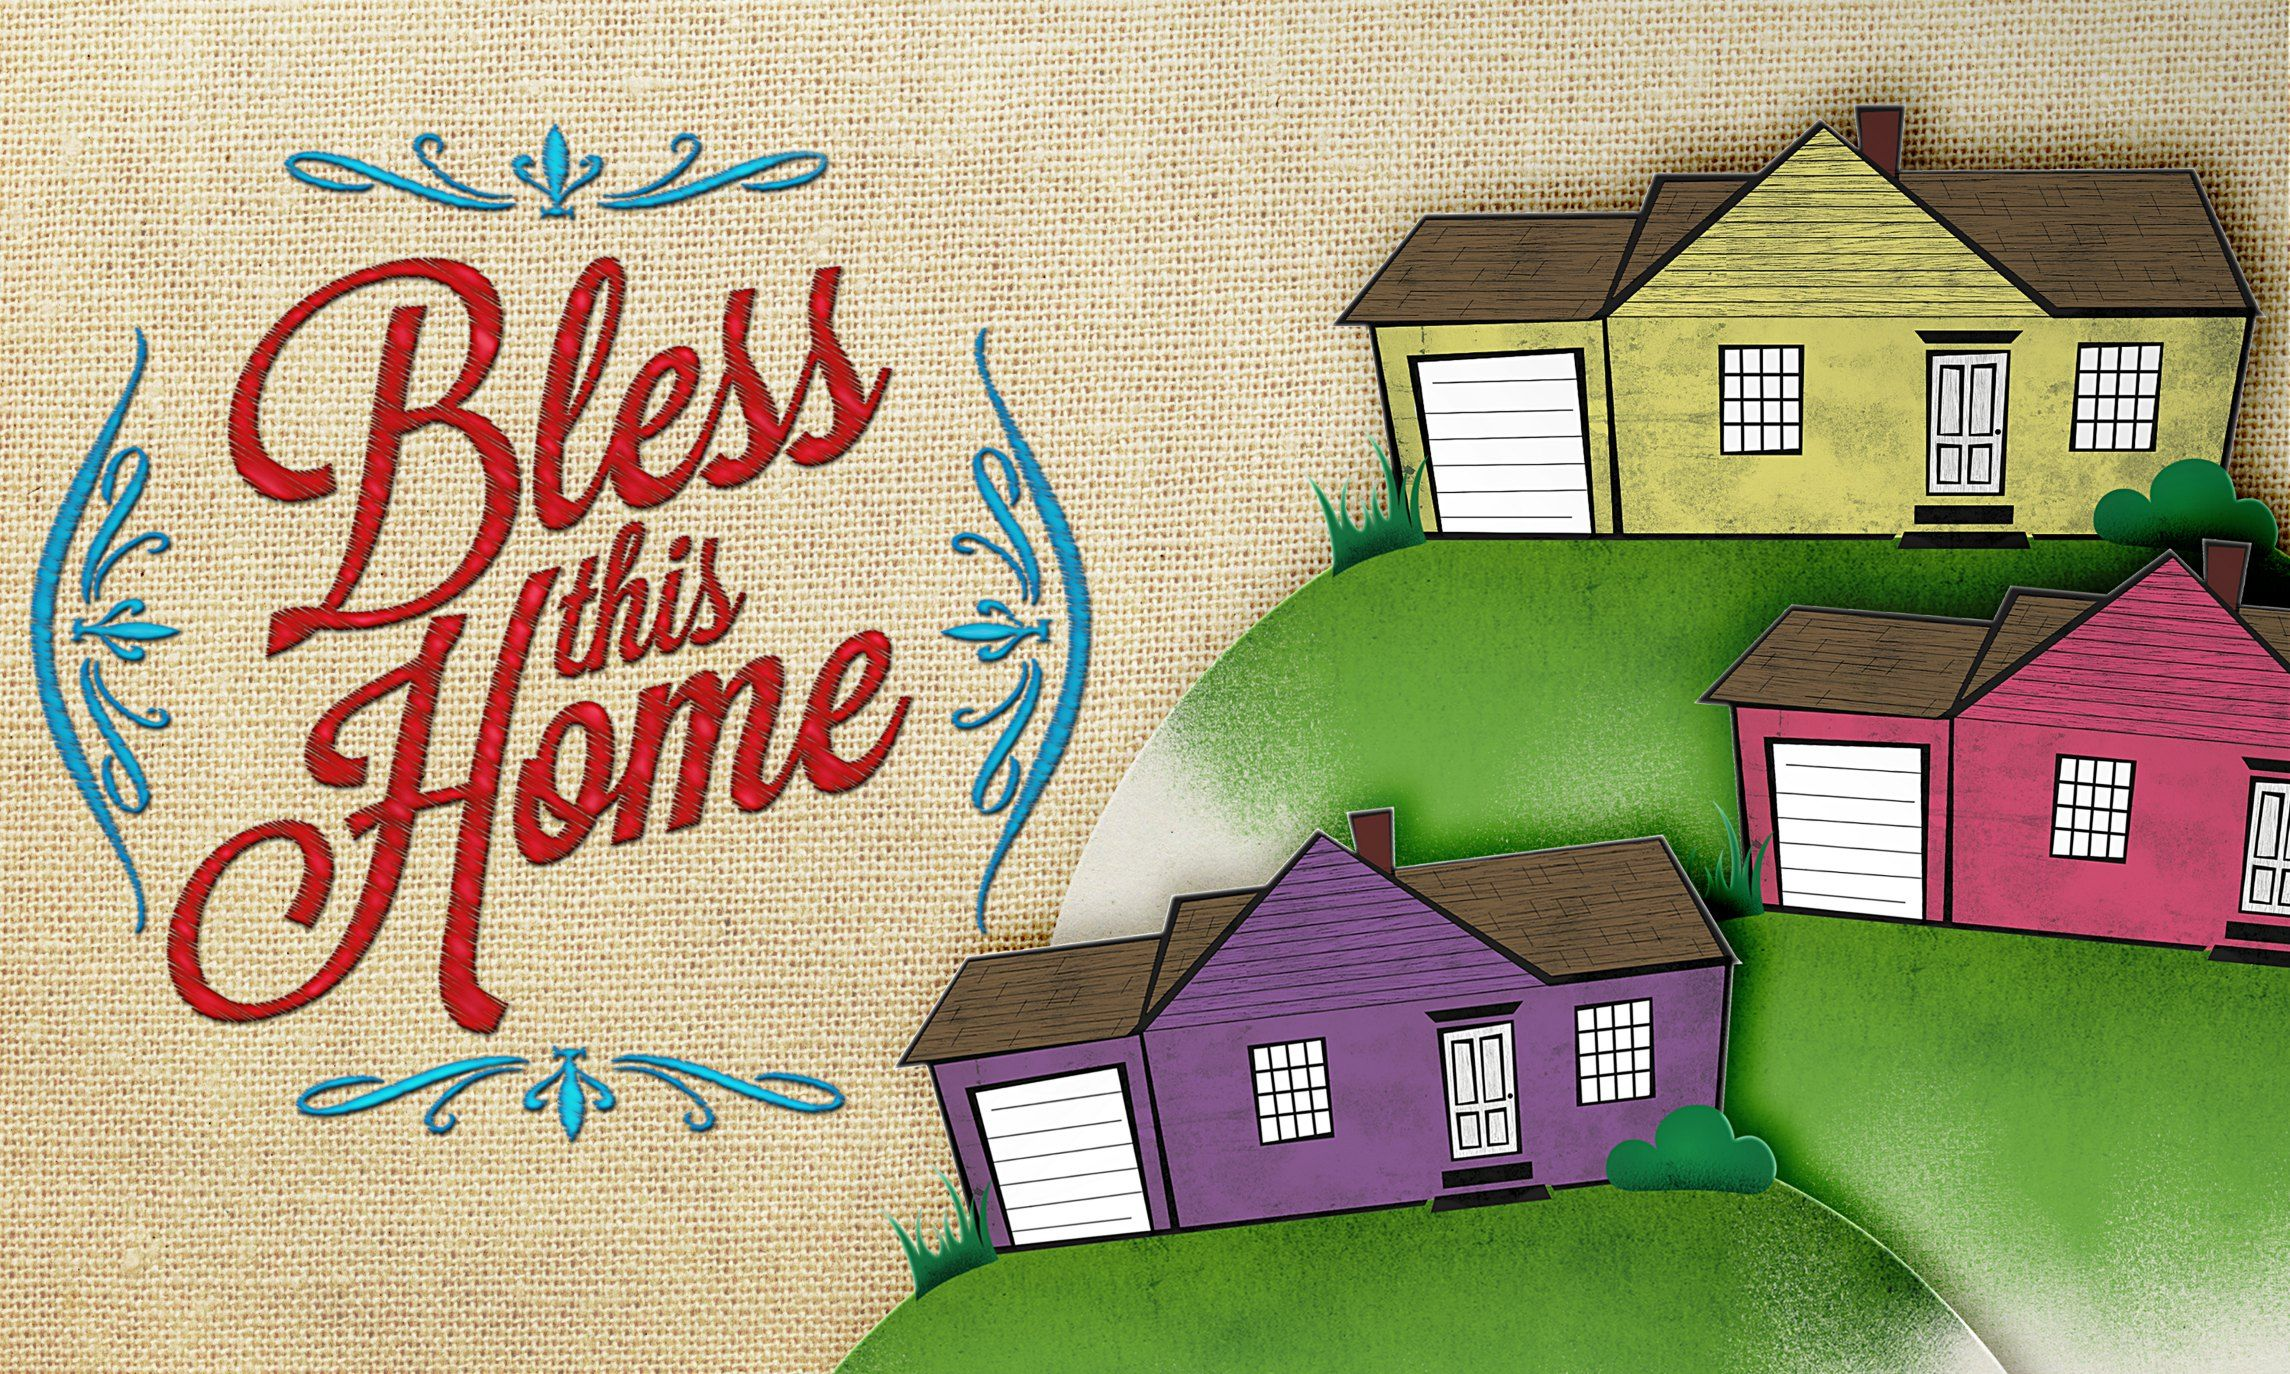 Bless This Home May 8-29, 2016